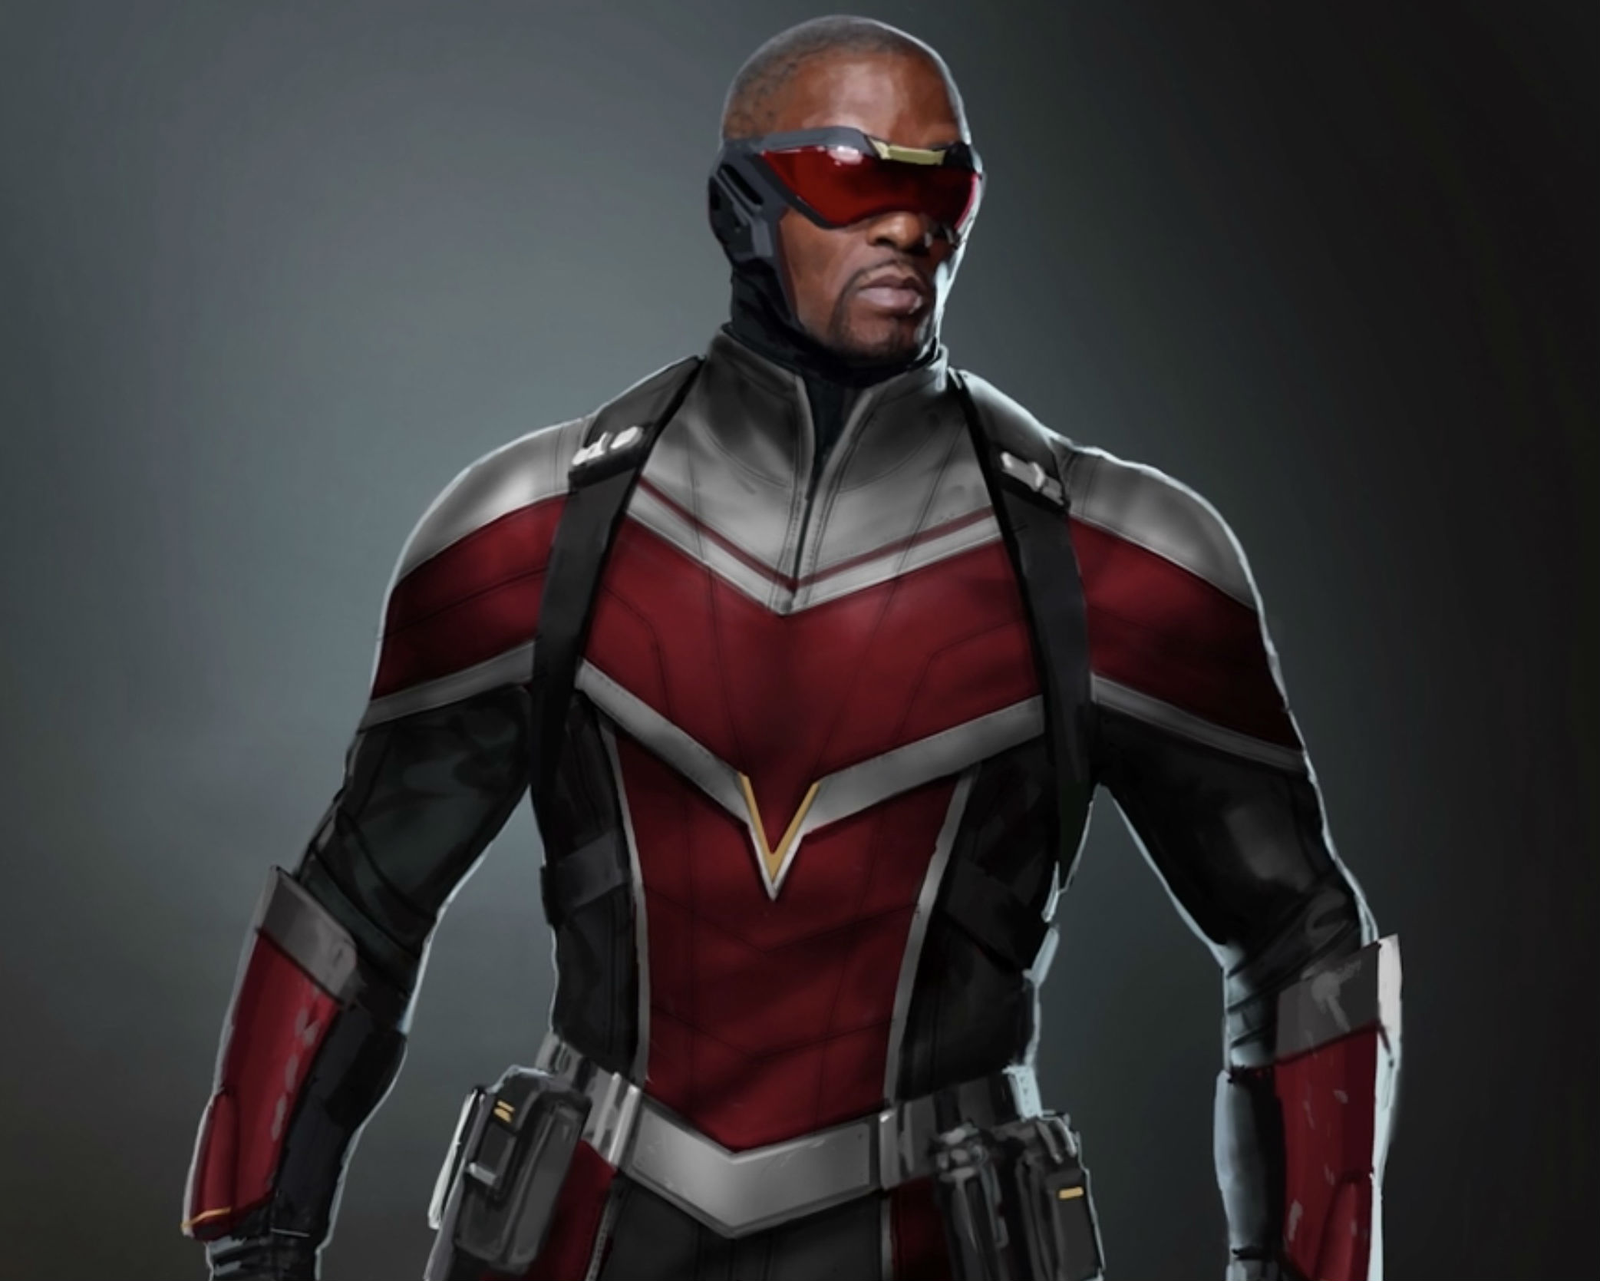 New suit for The Falcon